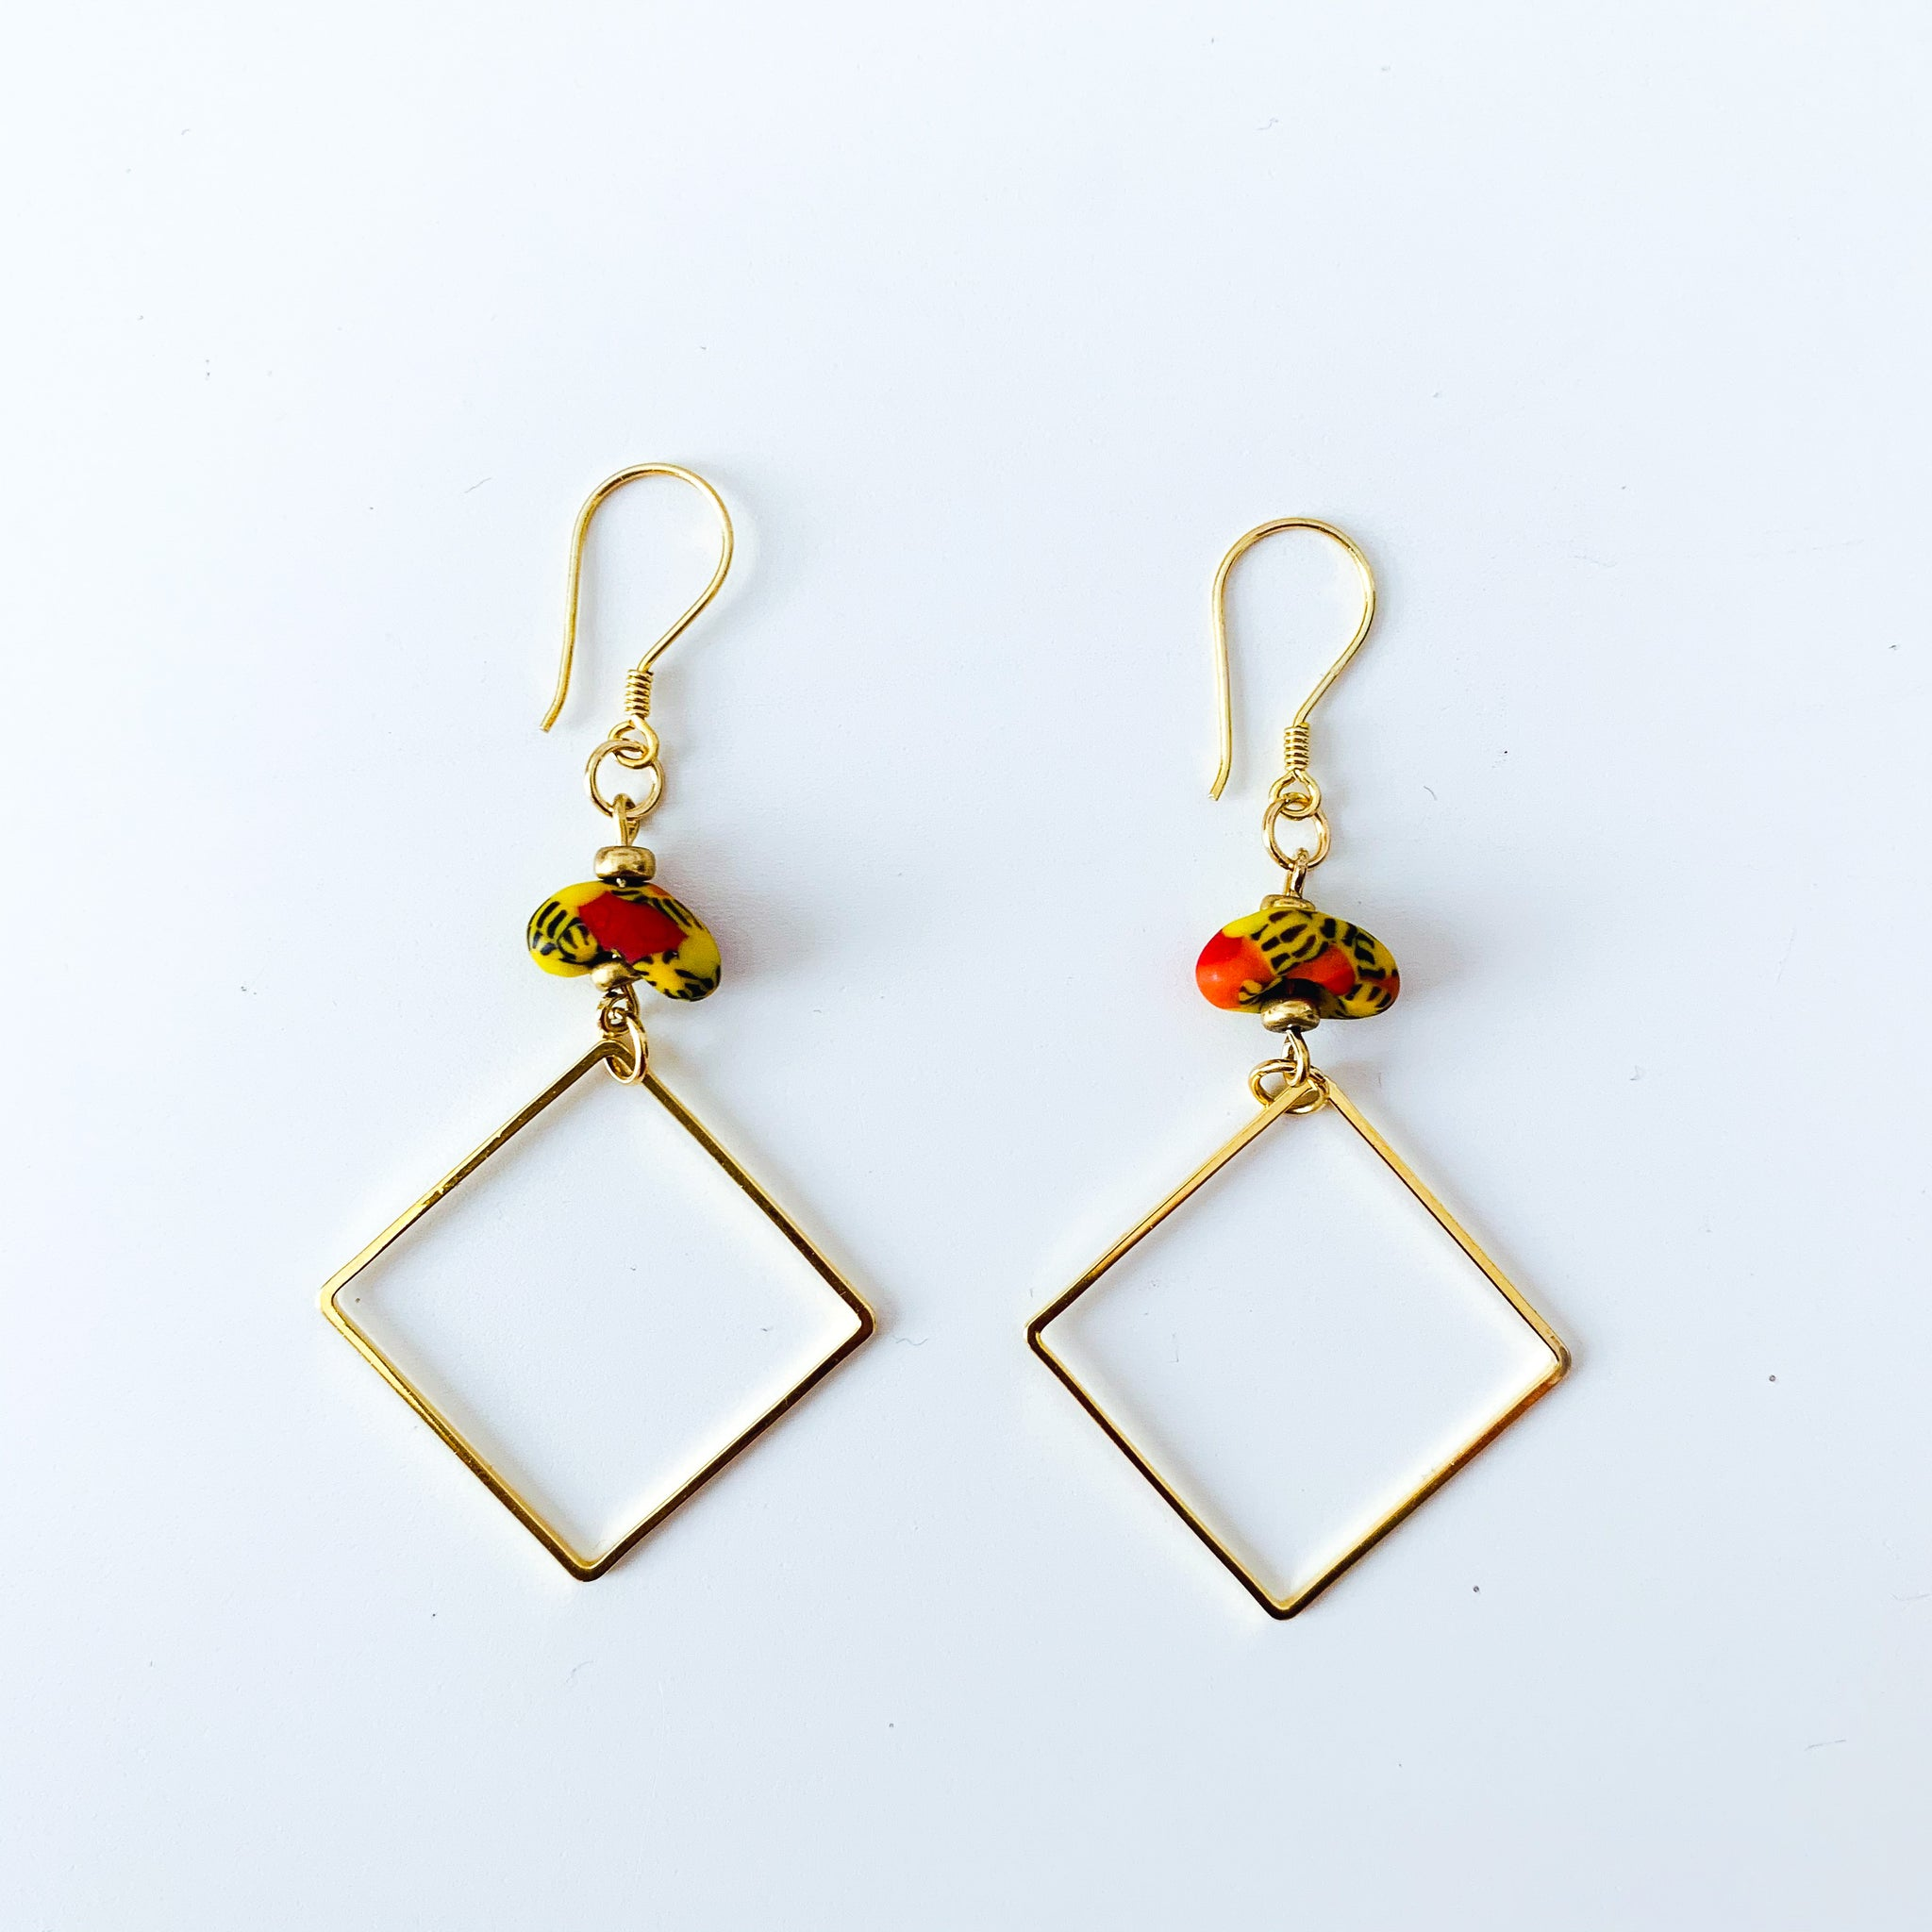 Akuse Afiena Earrings